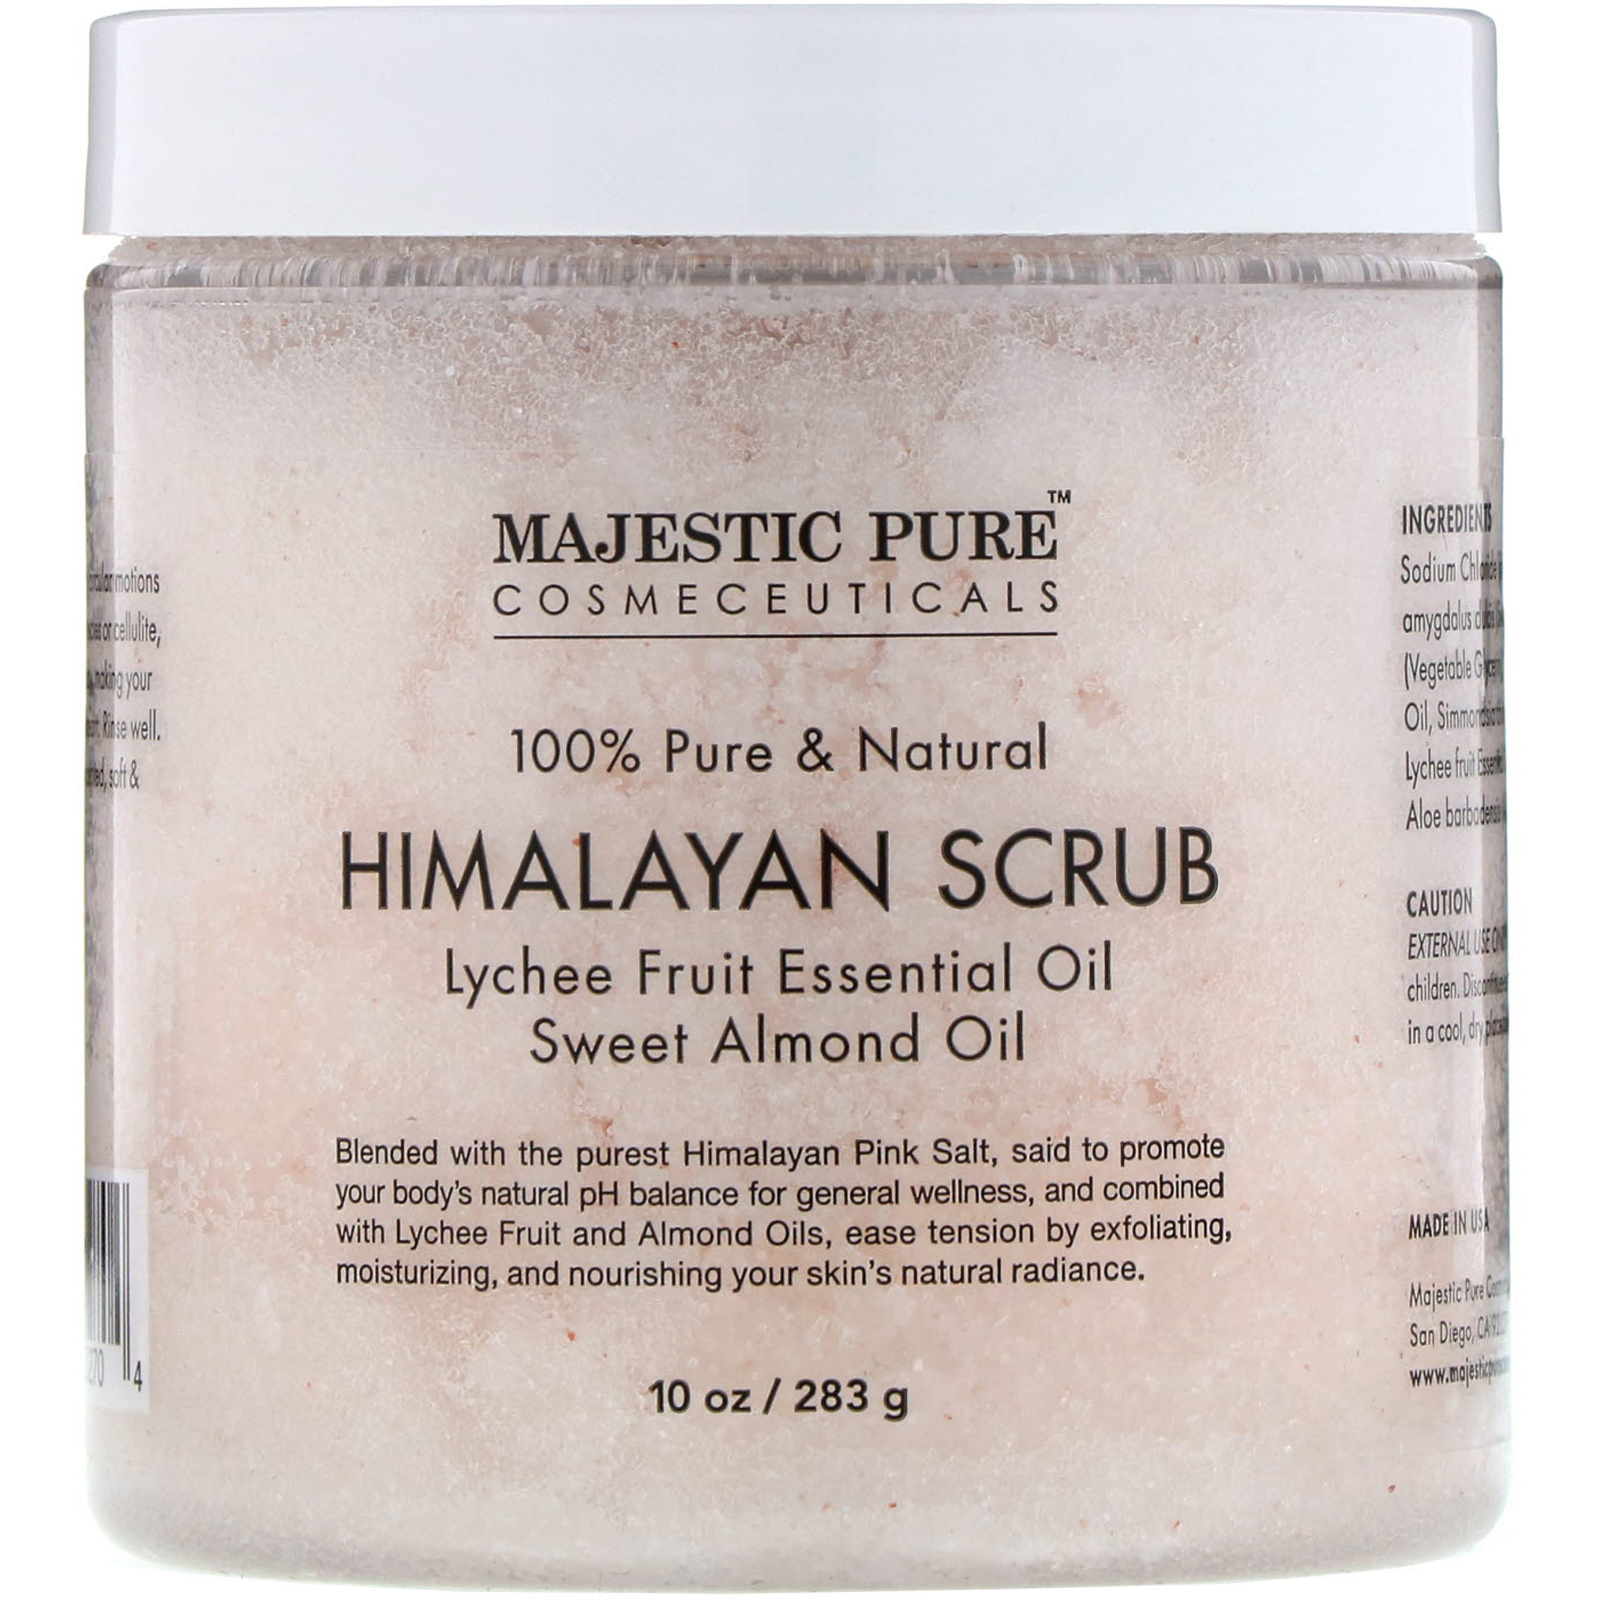 a18b2214d13 Majestic Pure, 100% Pure & Natural, Himalayan Scrub, 10 oz (283 g). By  Majestic Pure. Click to zoom